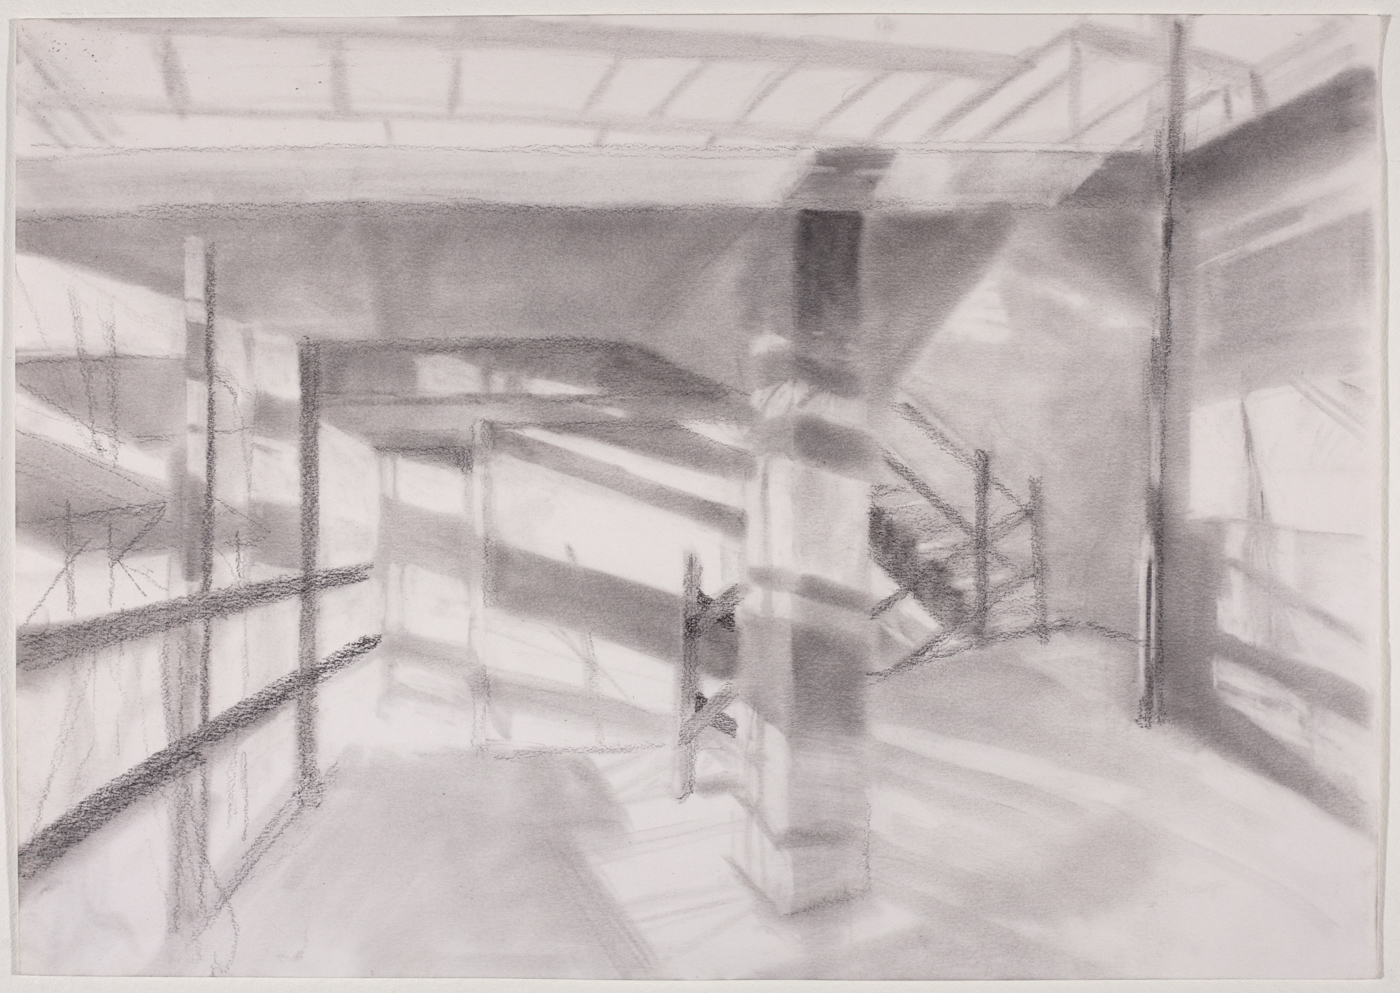 Study for 163rd St Mural , 2018 graphite powder on paper, 16 x 20 in